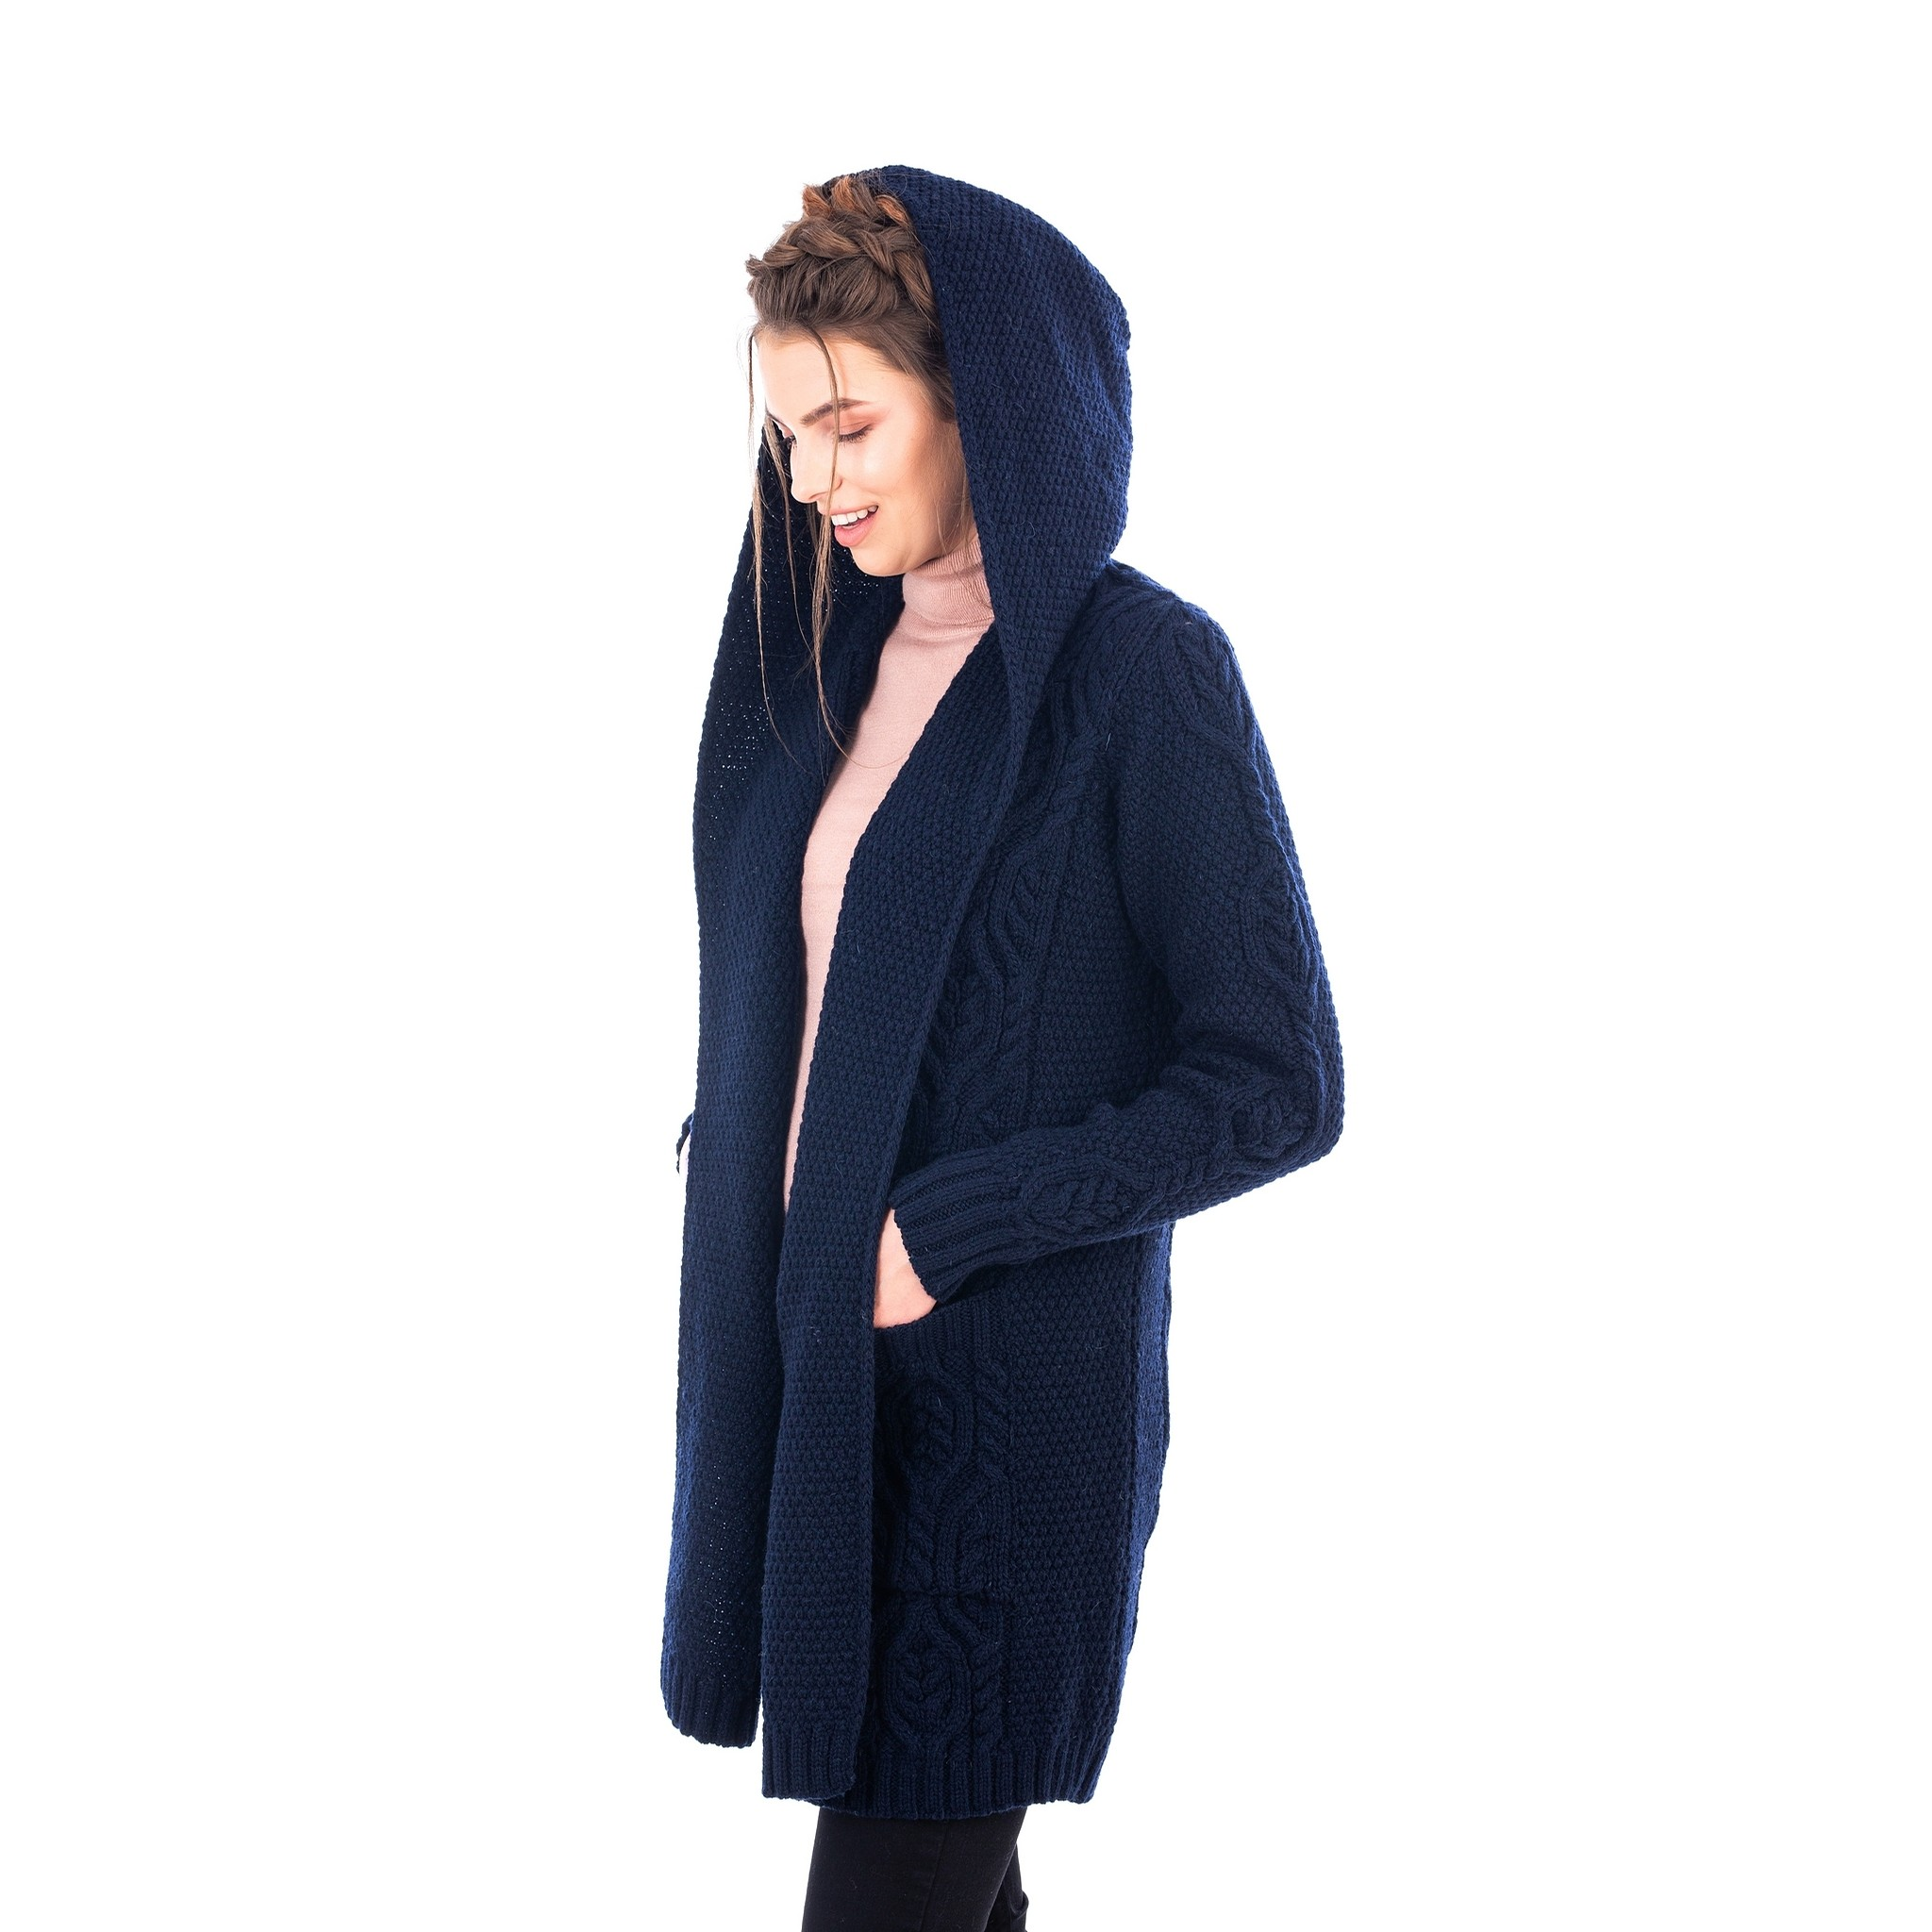 Irish Hooded Coat Cardigan